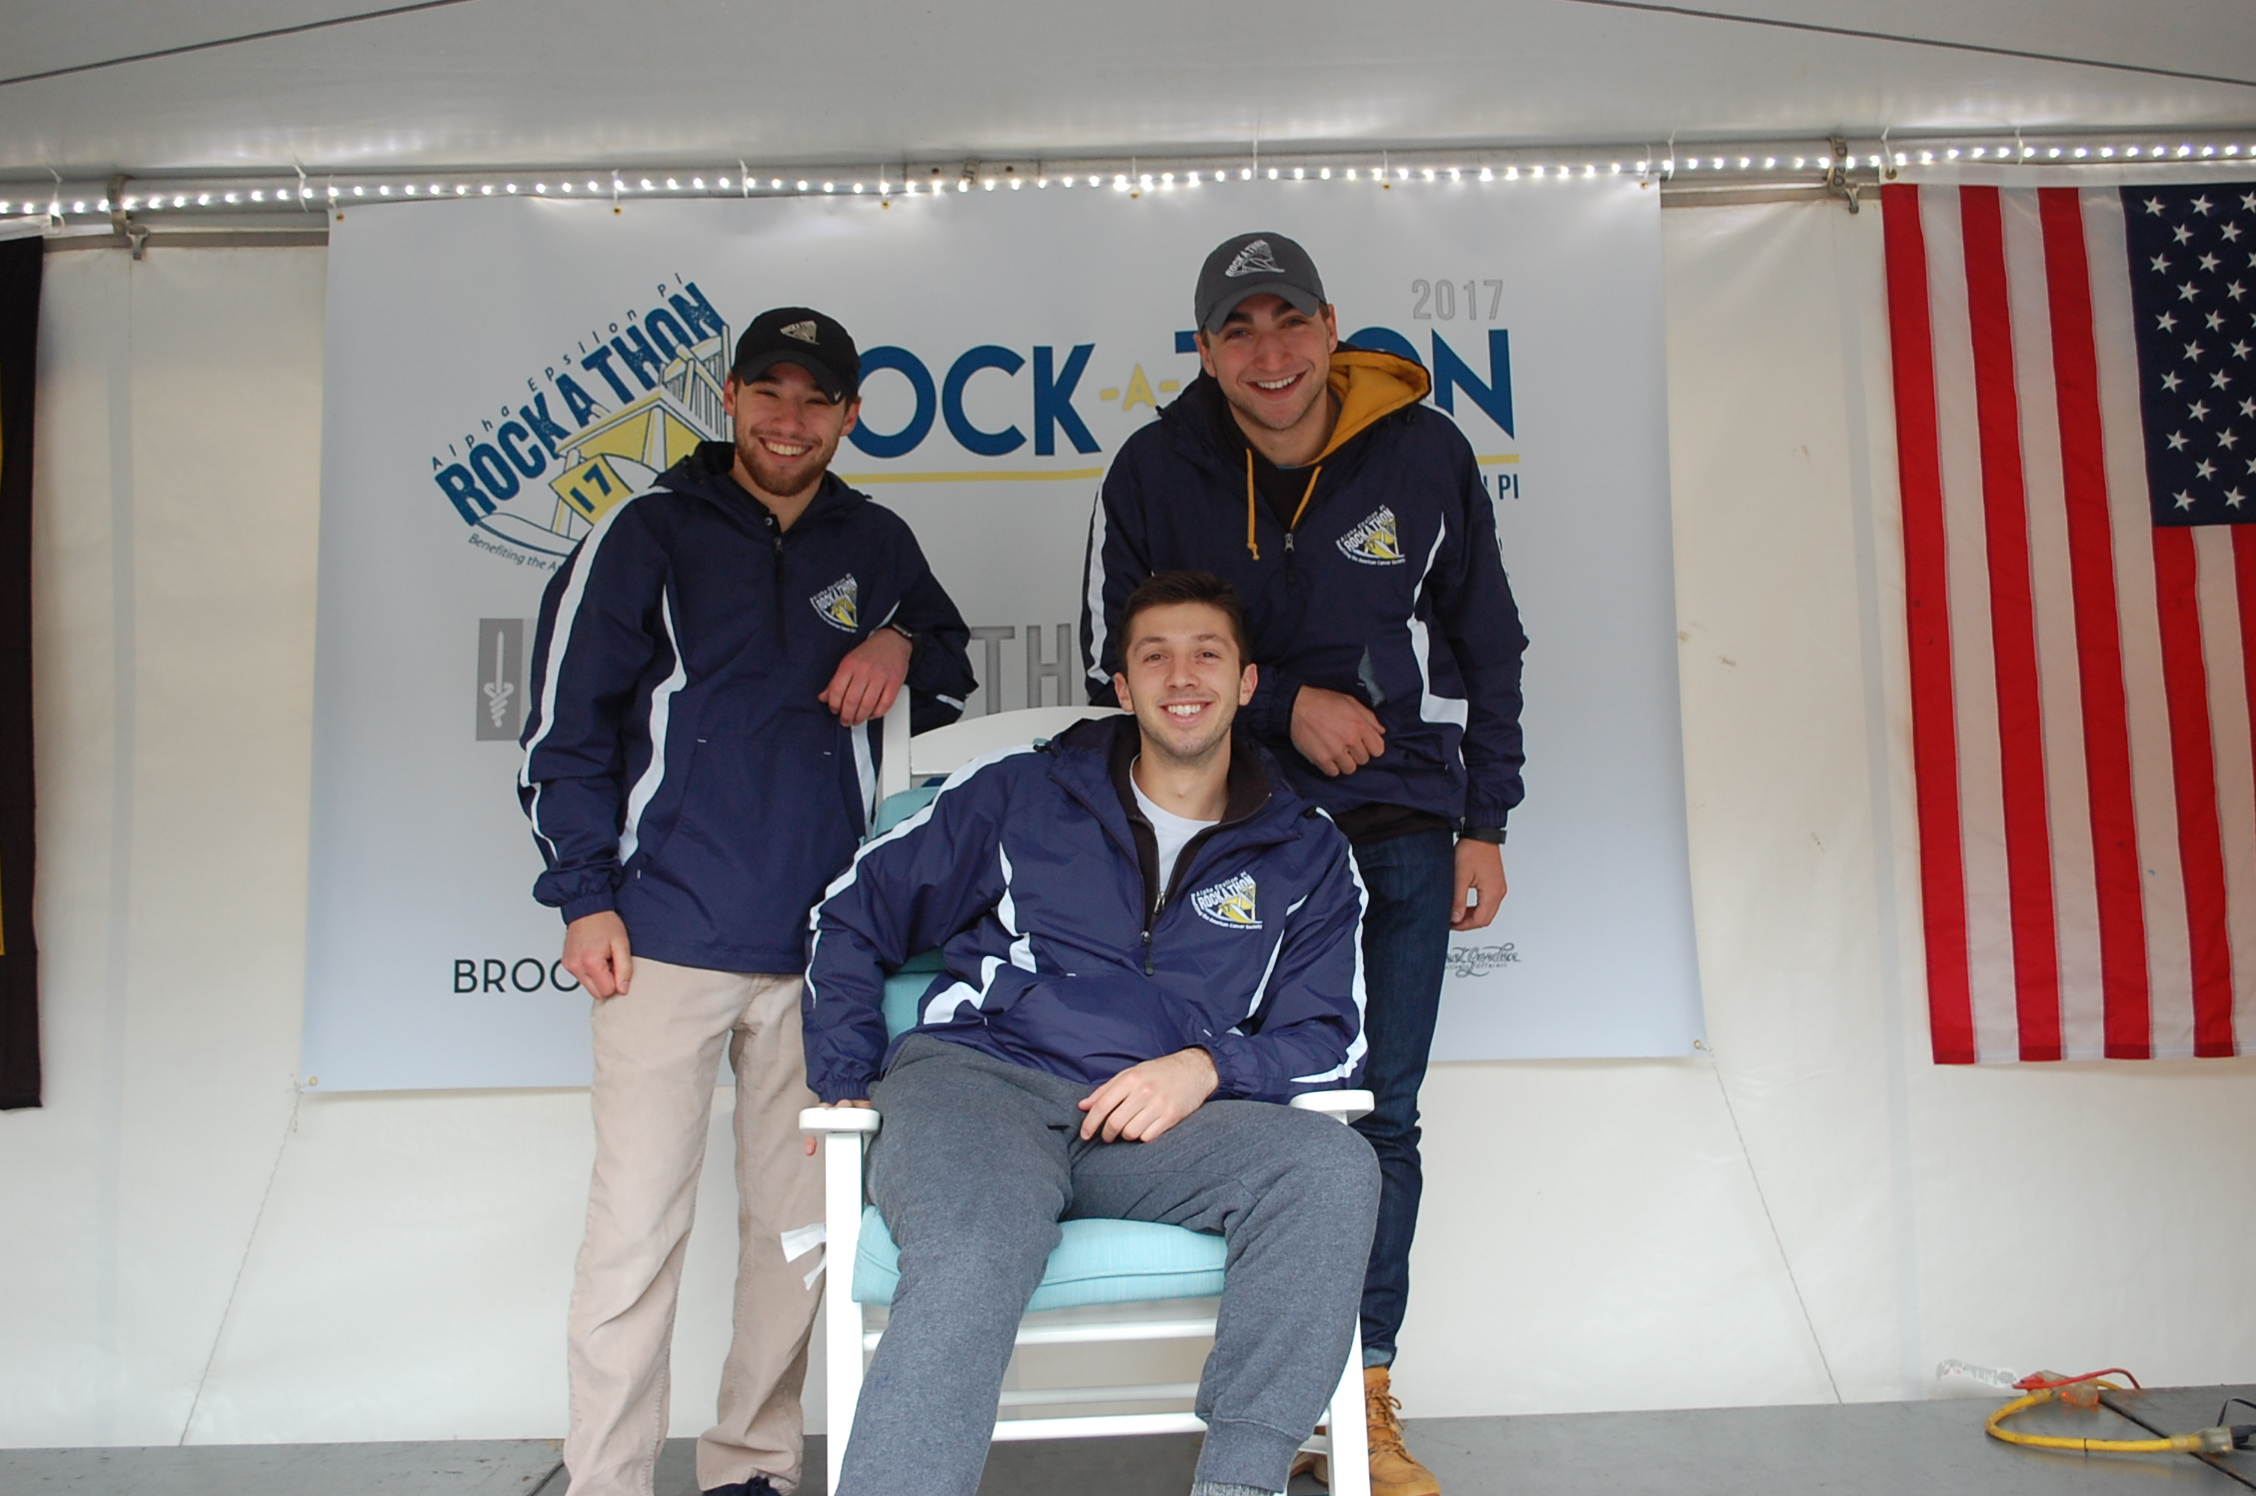 2017 Rock-A-Thon rocker Adam Bodner (sitting) is joined by co-chair Austin Dubinsky (left standing) and co-chair Adam Pressler (right standing). The Alpha Epsilon Pi chapter at MU has hosted the philanthropy every other April since 1969.